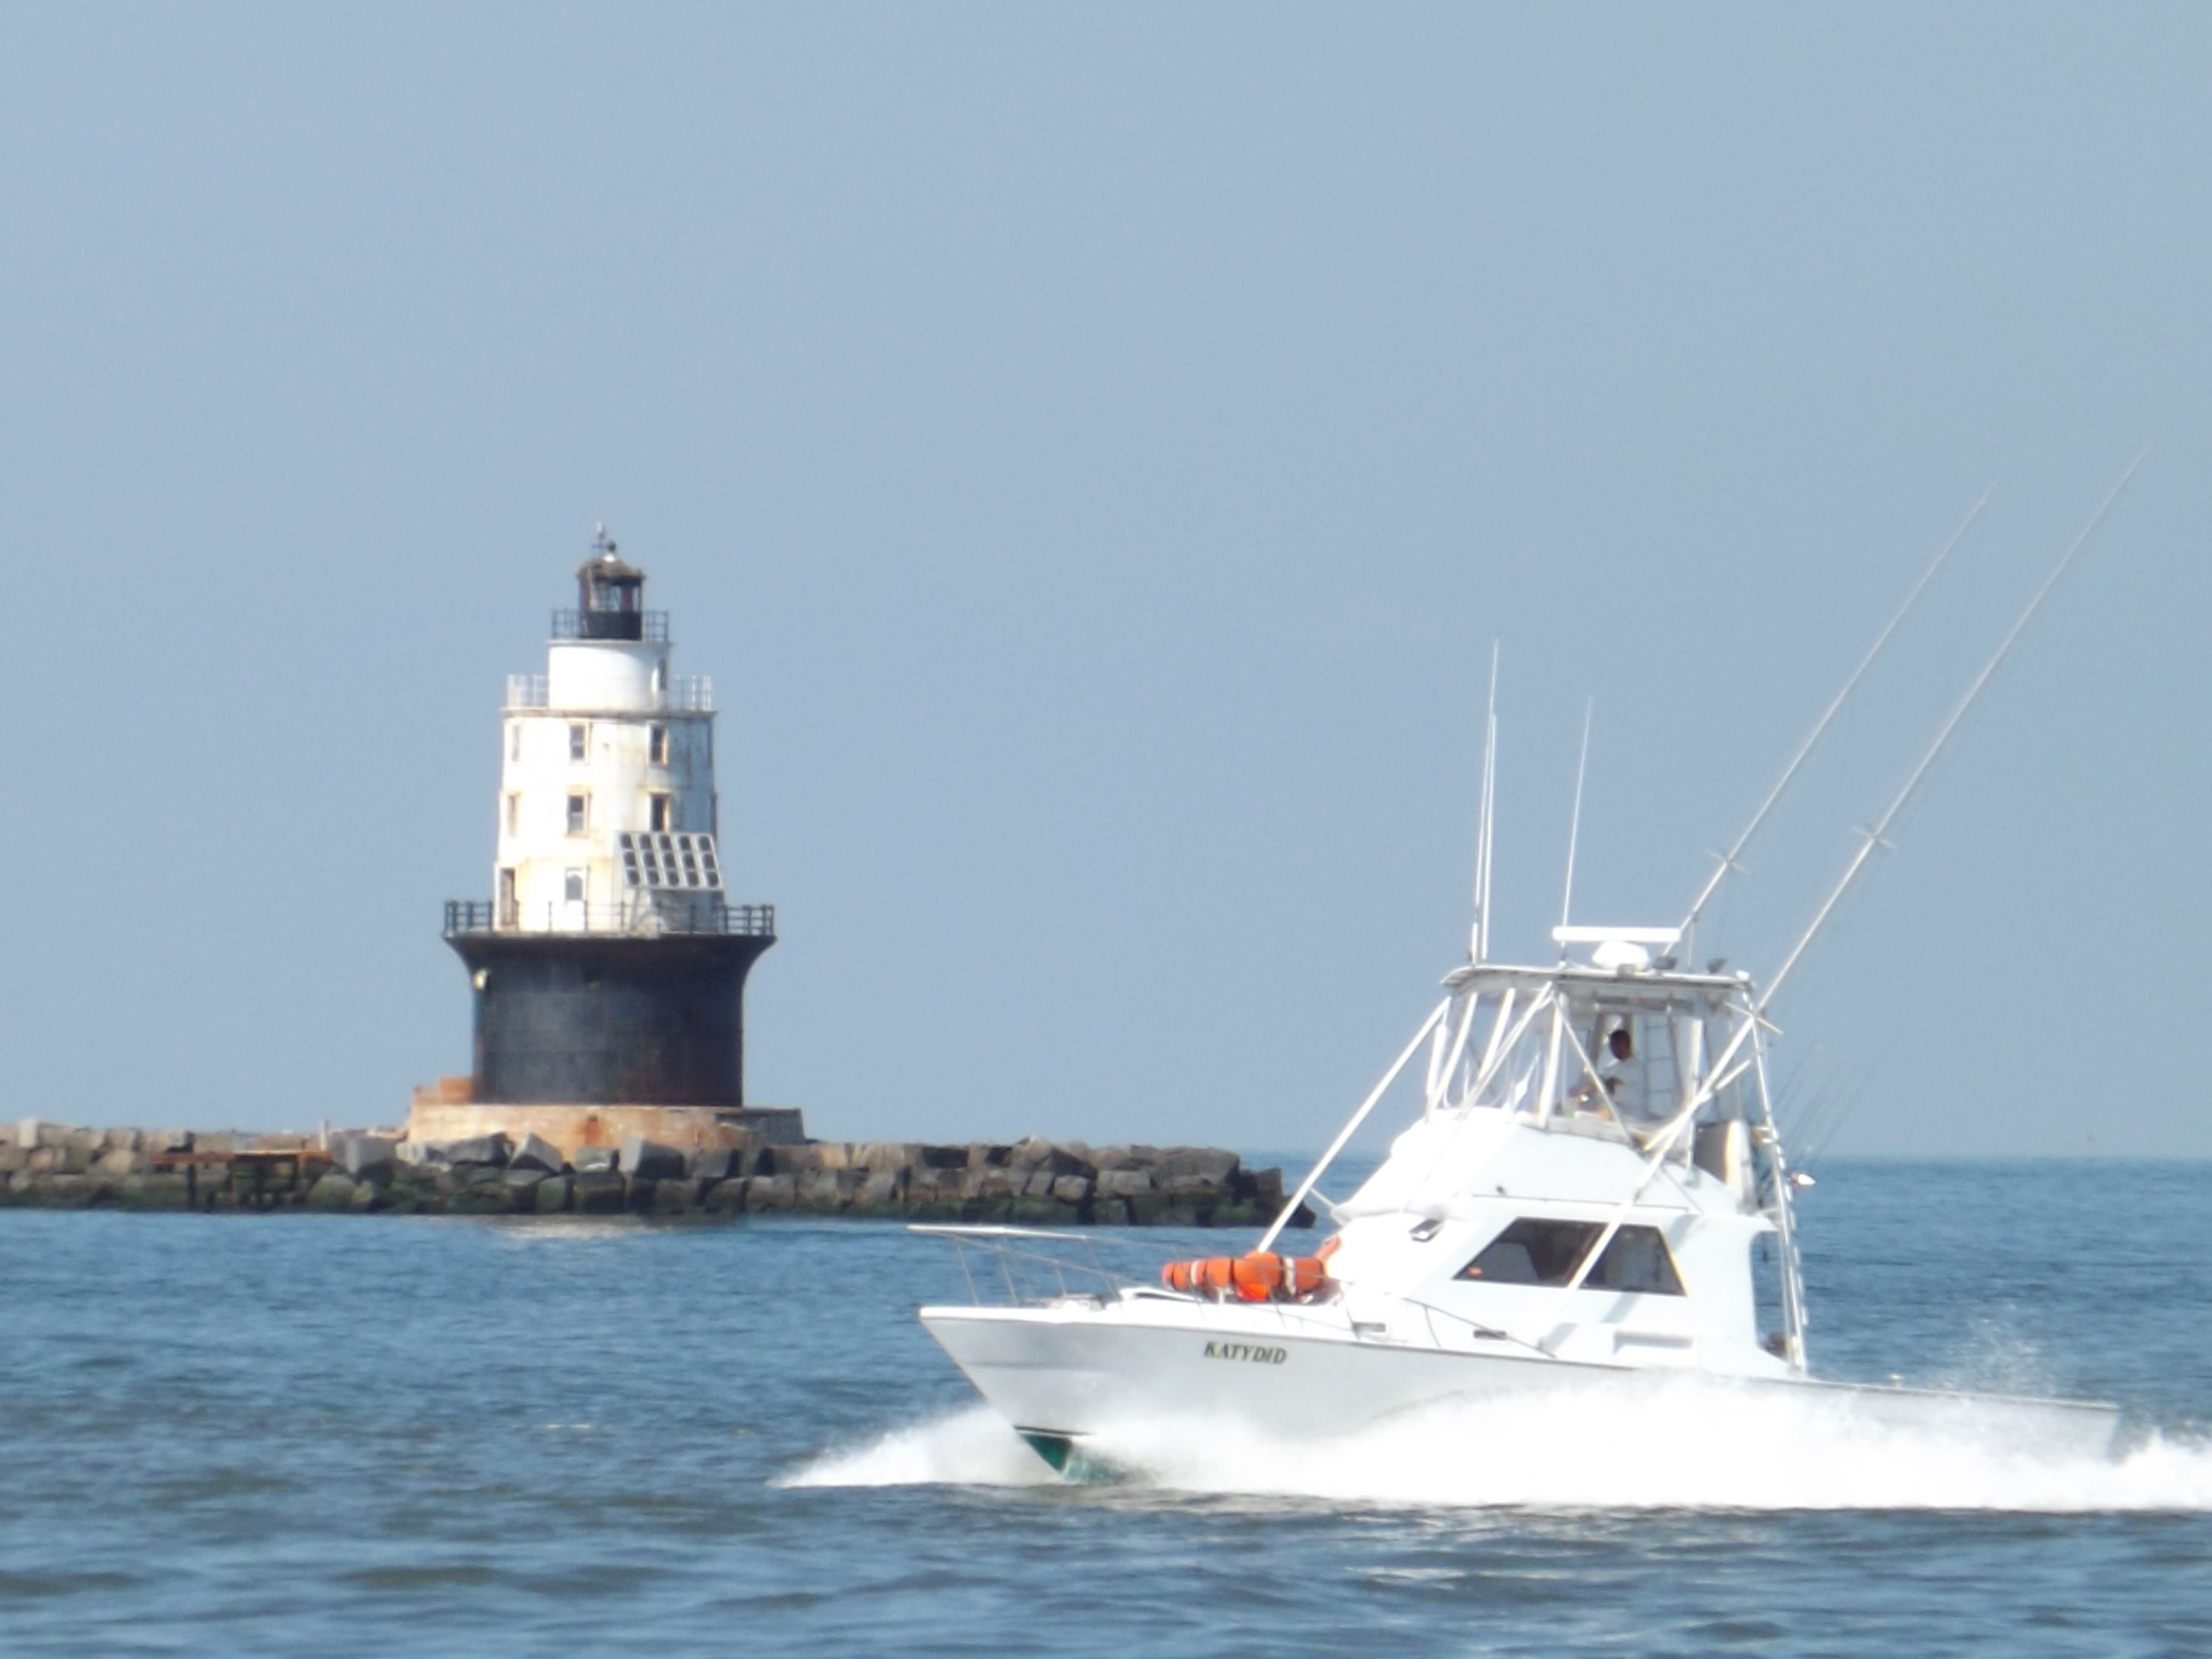 boat registration in delaware, sussex county, dnrec, boatingsafety, united states coast guard